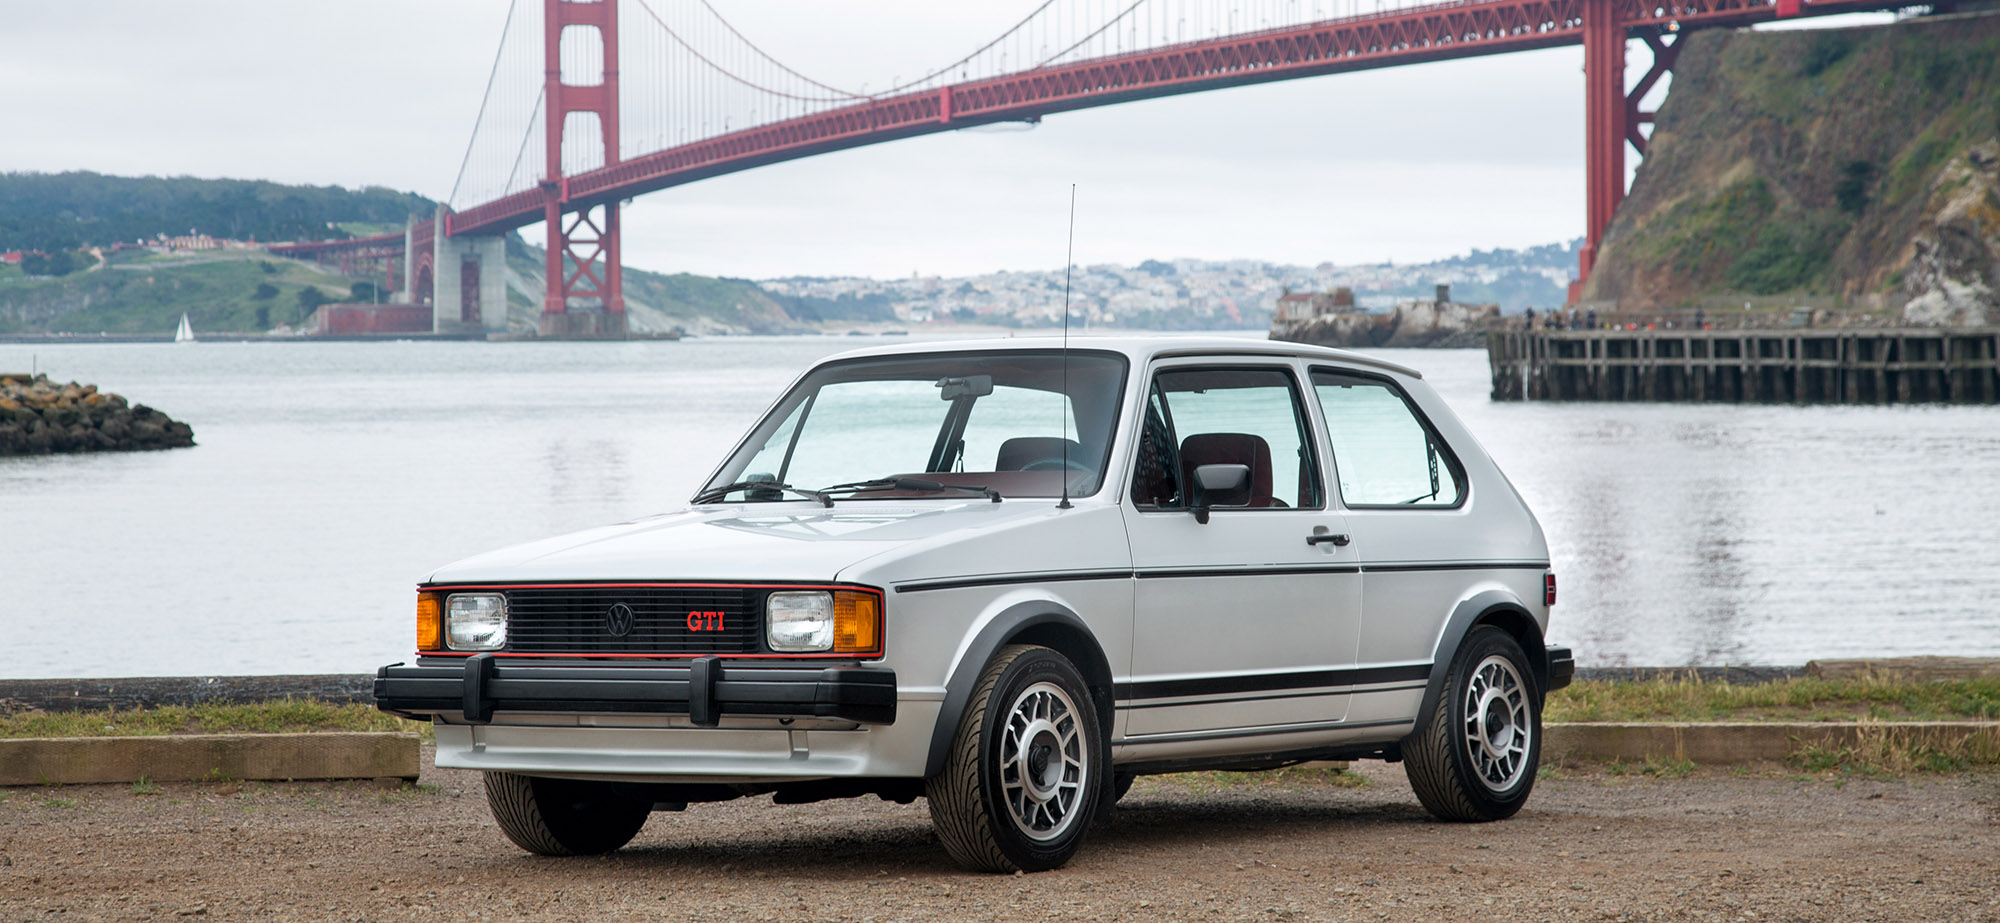 Vintage Views: VW Rabbit GTI | Articles | Grassroots Motorsports